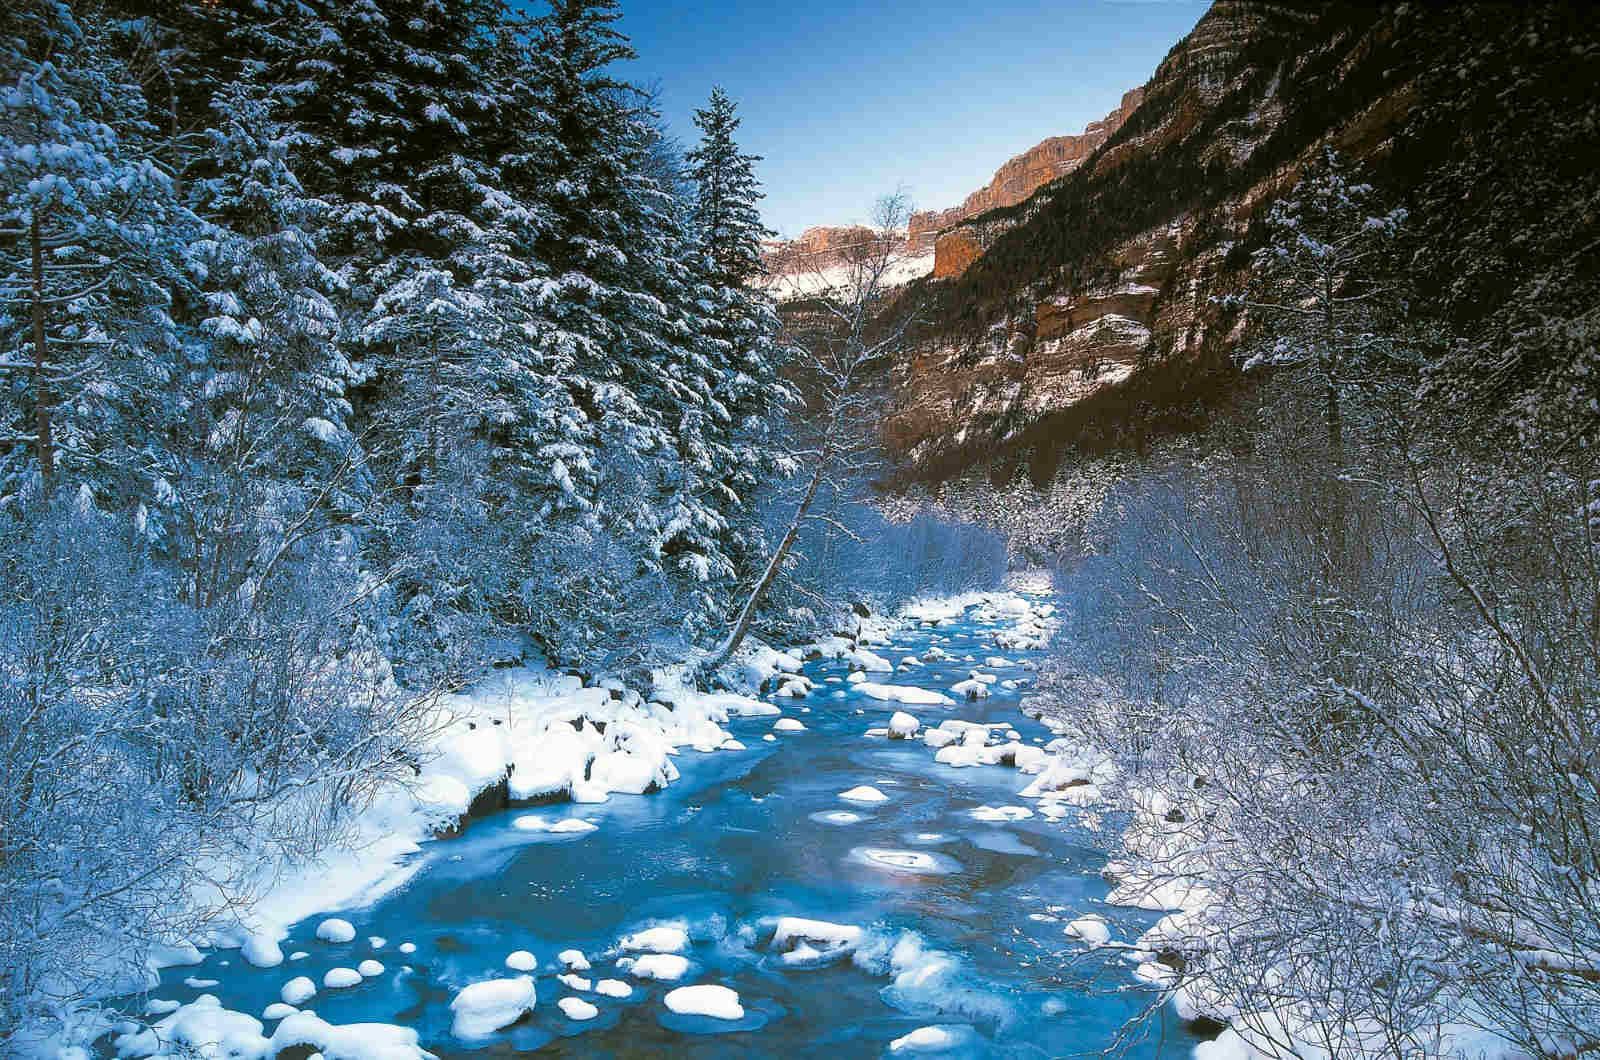 The river Arazas in winter in the Ordesa National Park with trees and stones laden with snow. Photo taken on our Photography Holiday Spain.